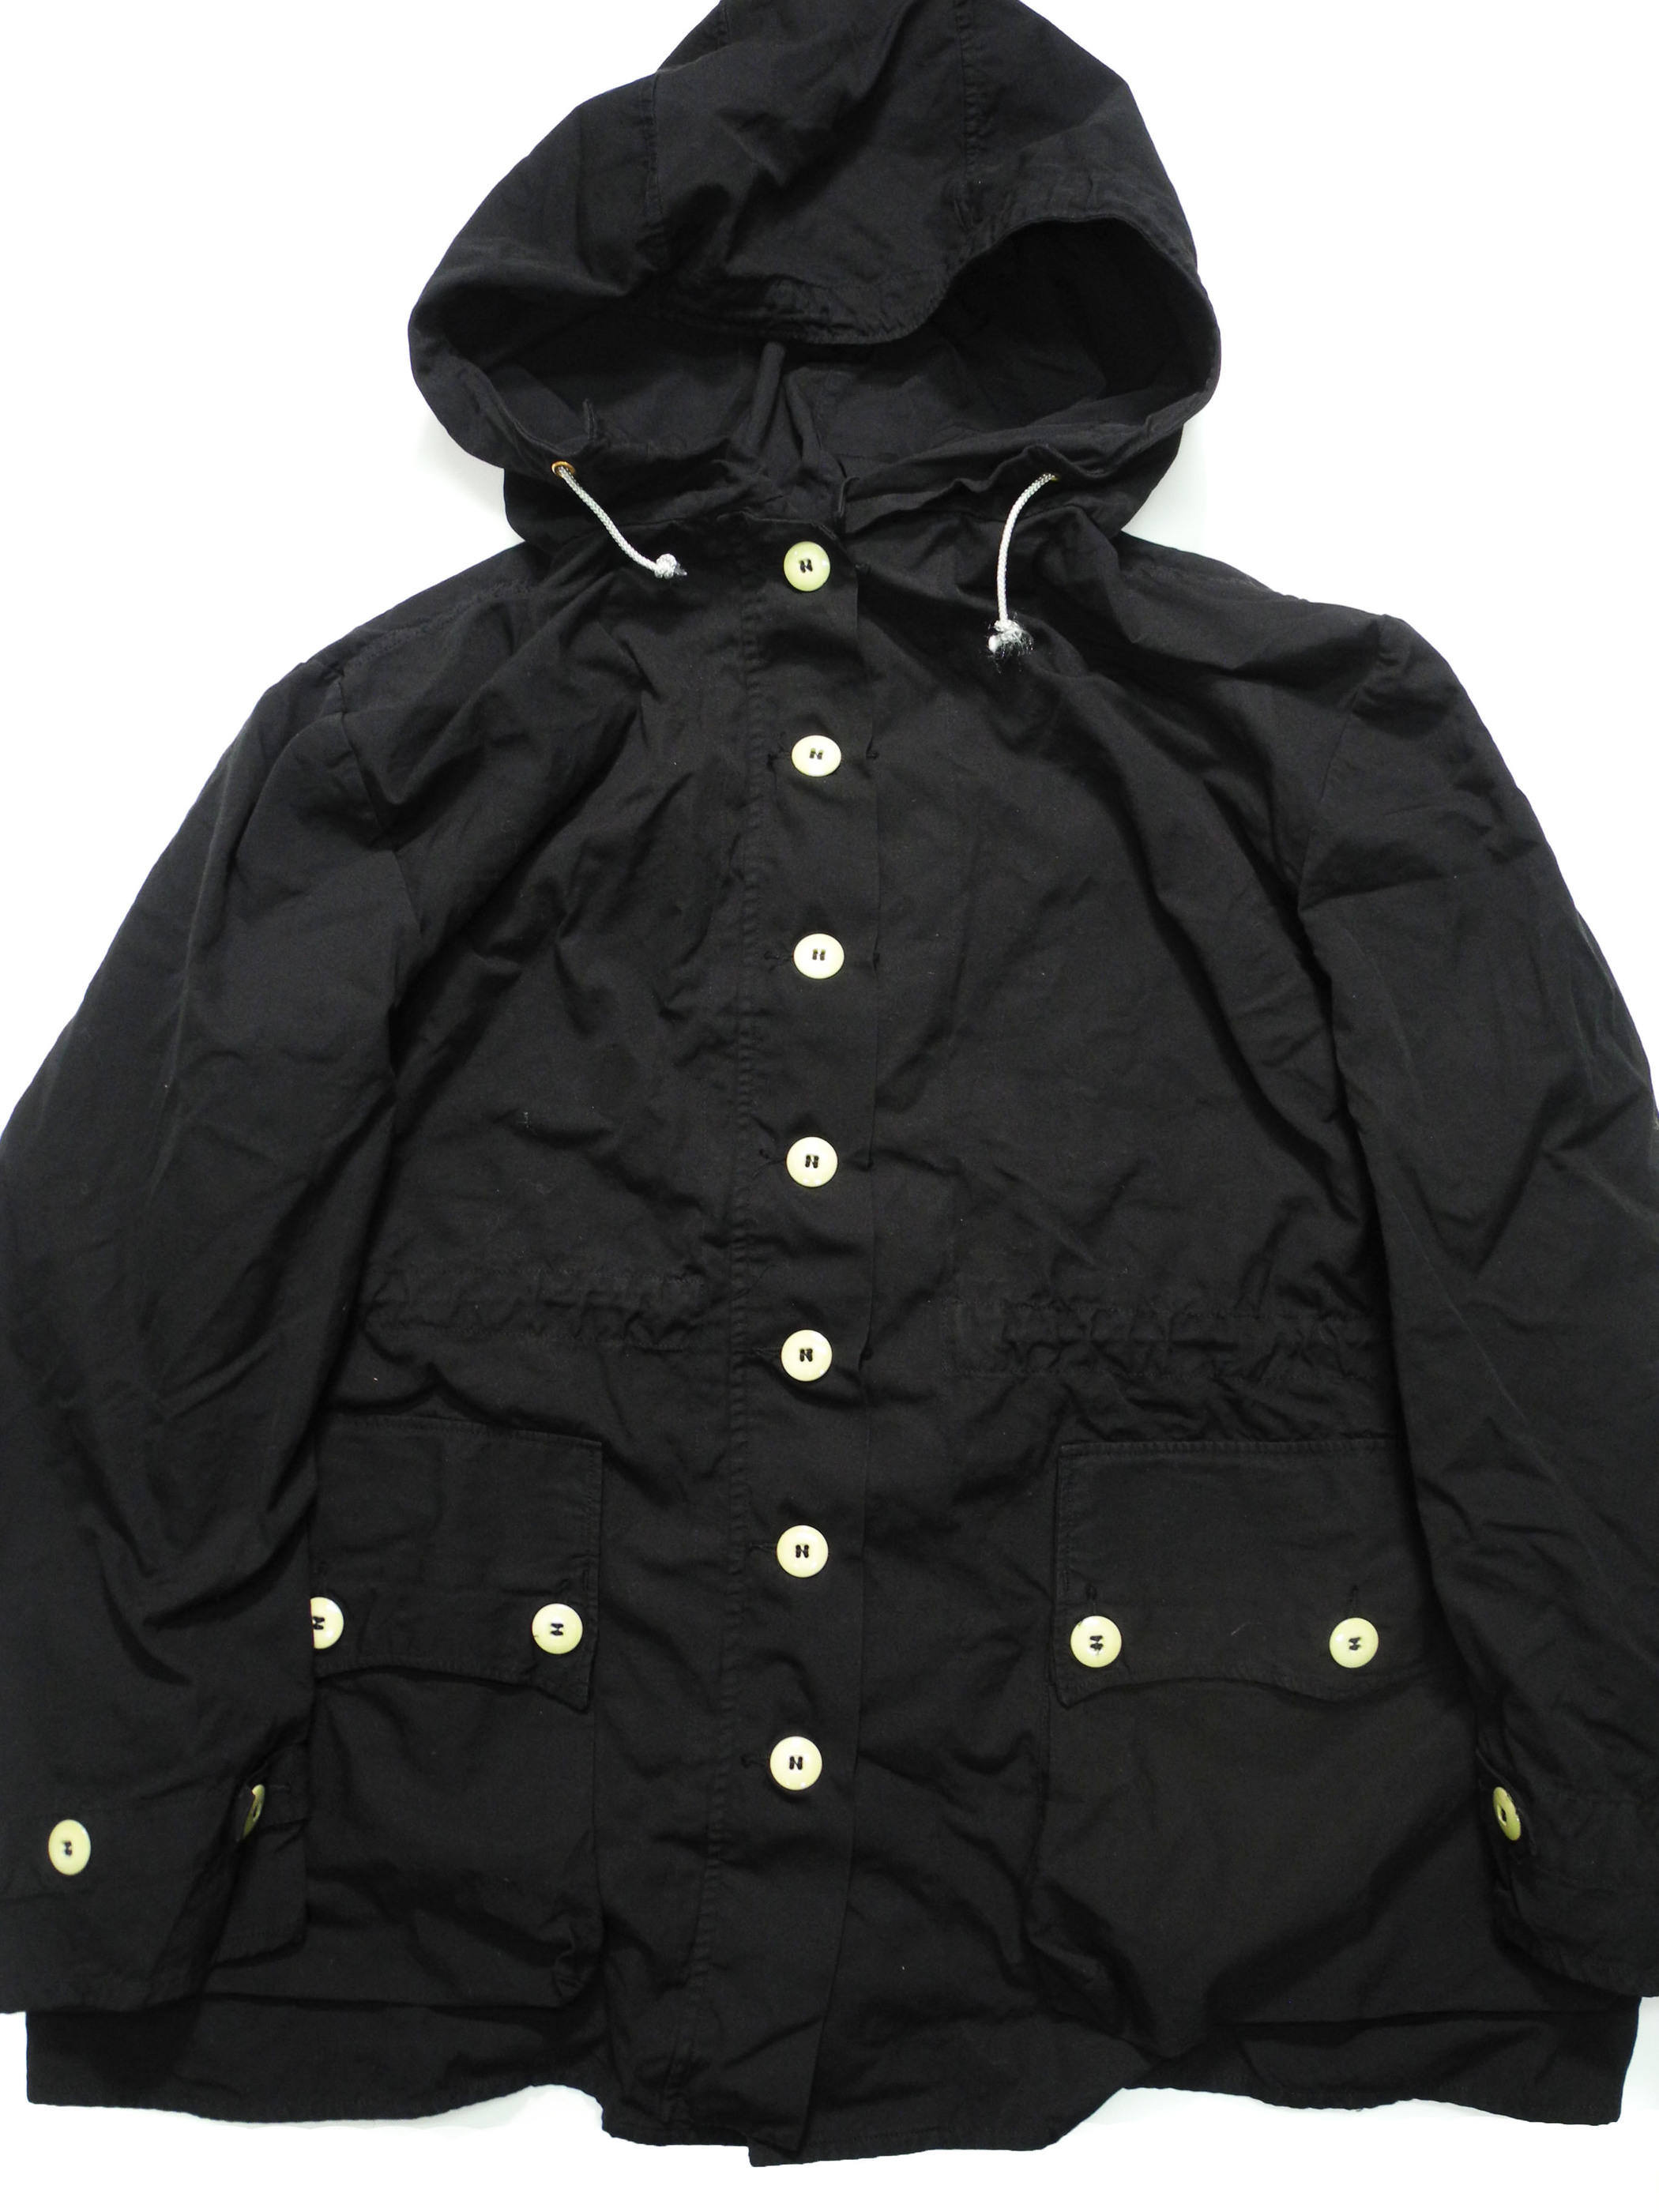 OVERDYE DEADSTOCK SWEDISH M62 SNOW PARKA BLACK スウェーデン軍 M62 スノーパーカー